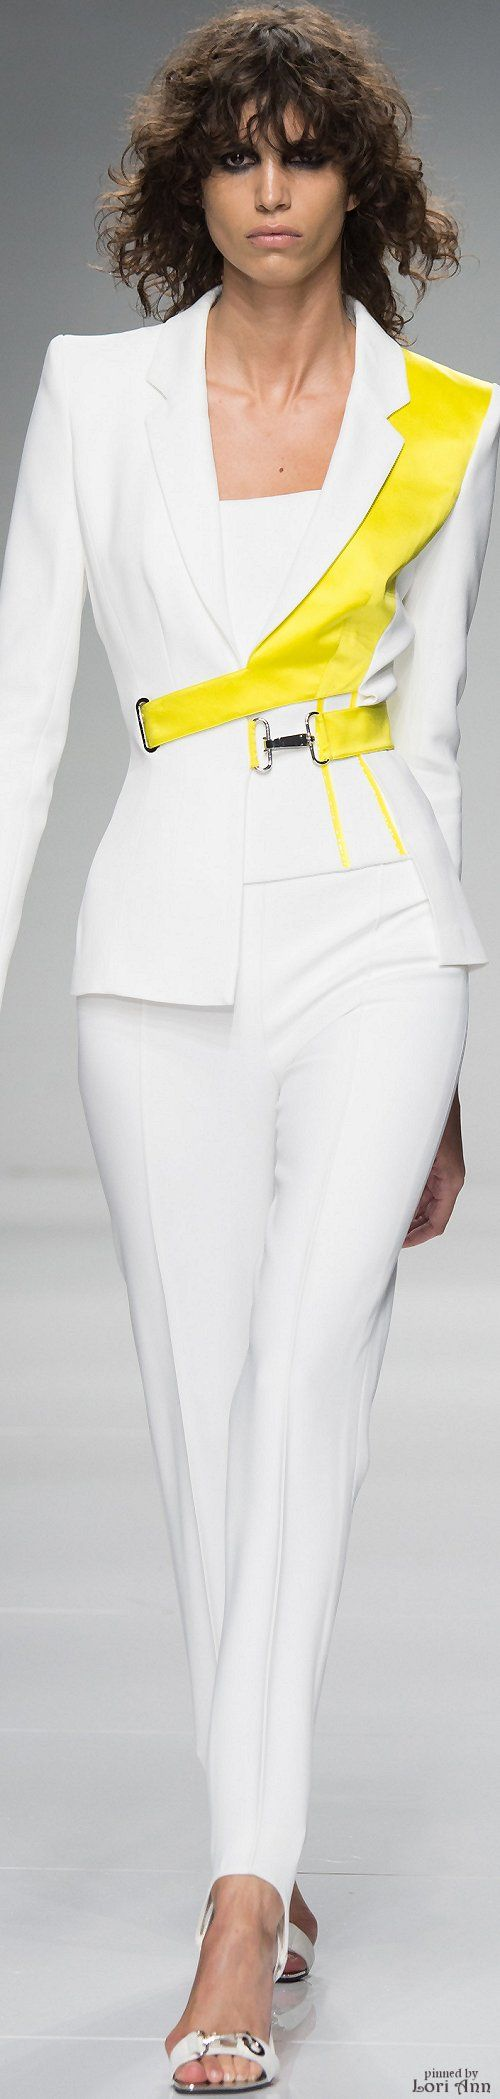 Atelier Versace Couture Spring 2016 Clothing, Shoes & Jewelry - Women - women's belts - http://amzn.to/2kG8U55